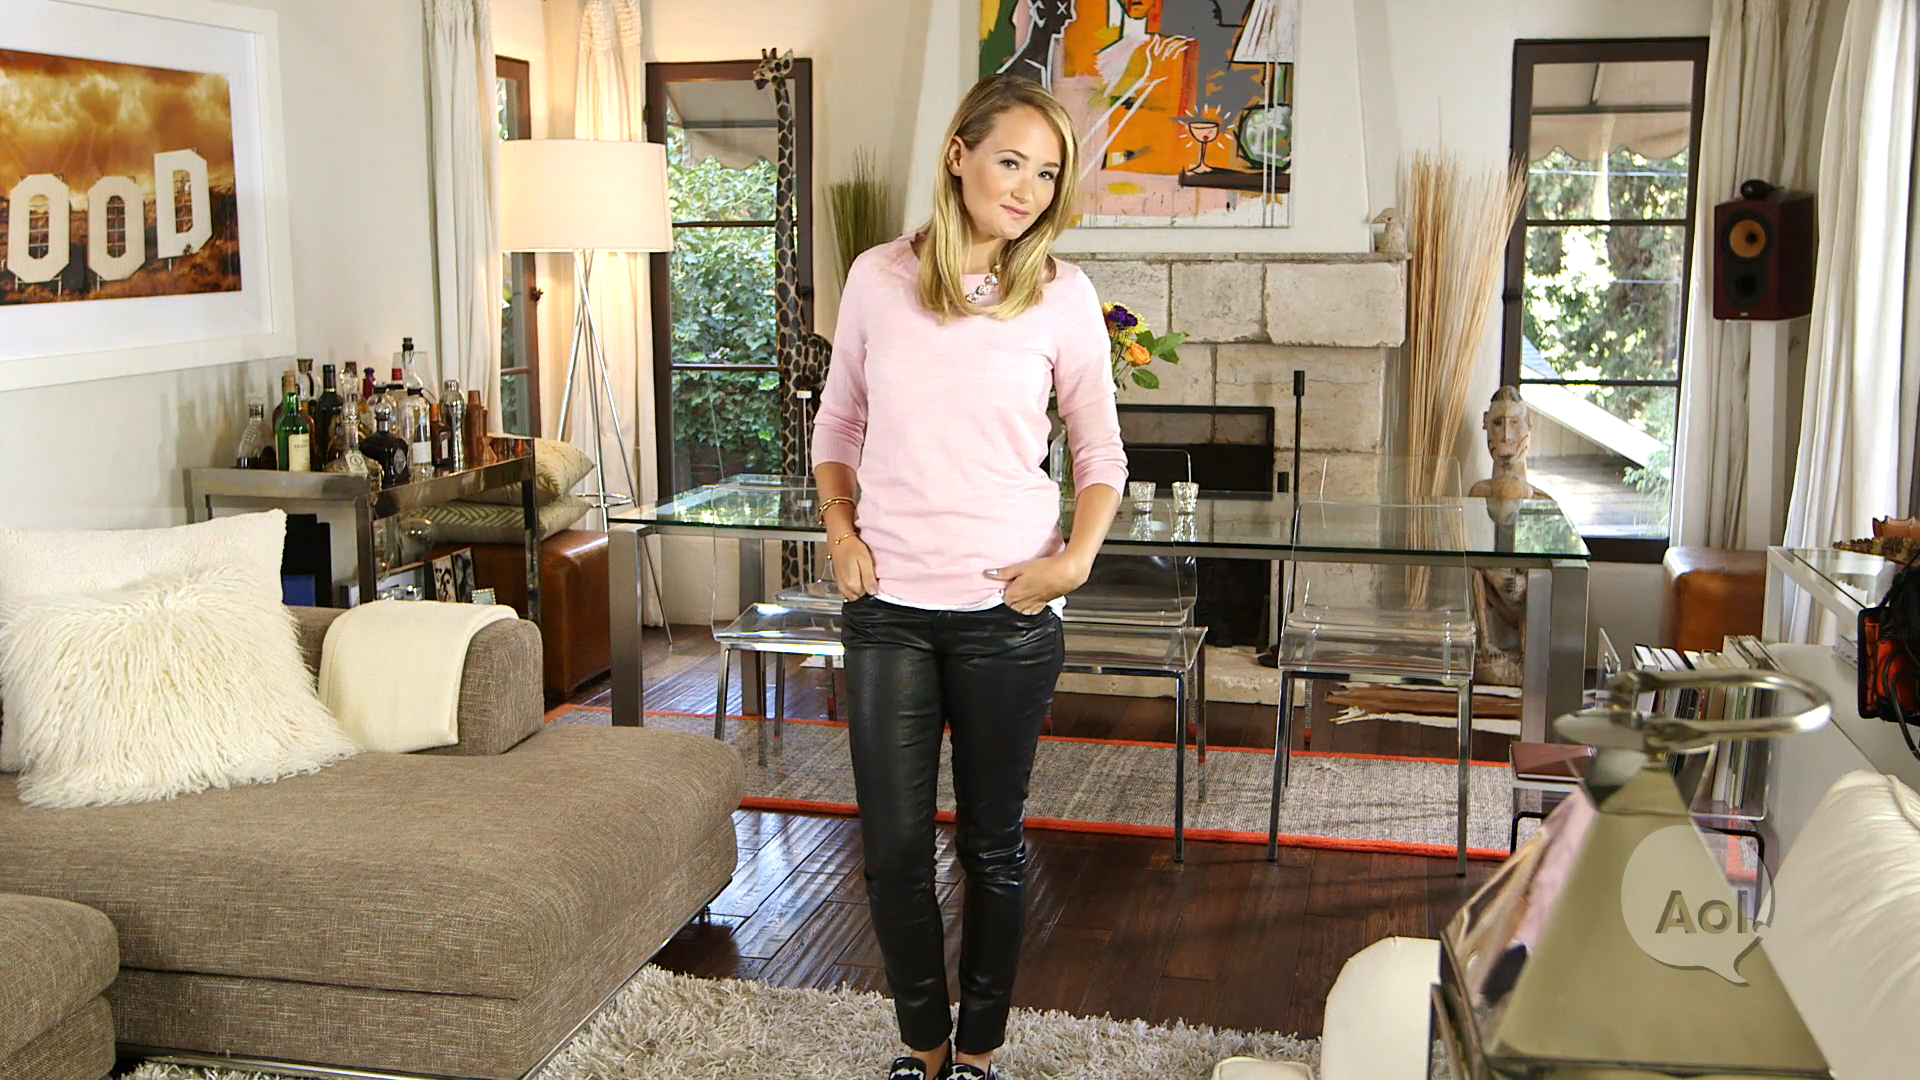 Get the Look: 3 Ways To Wear Leather Pants